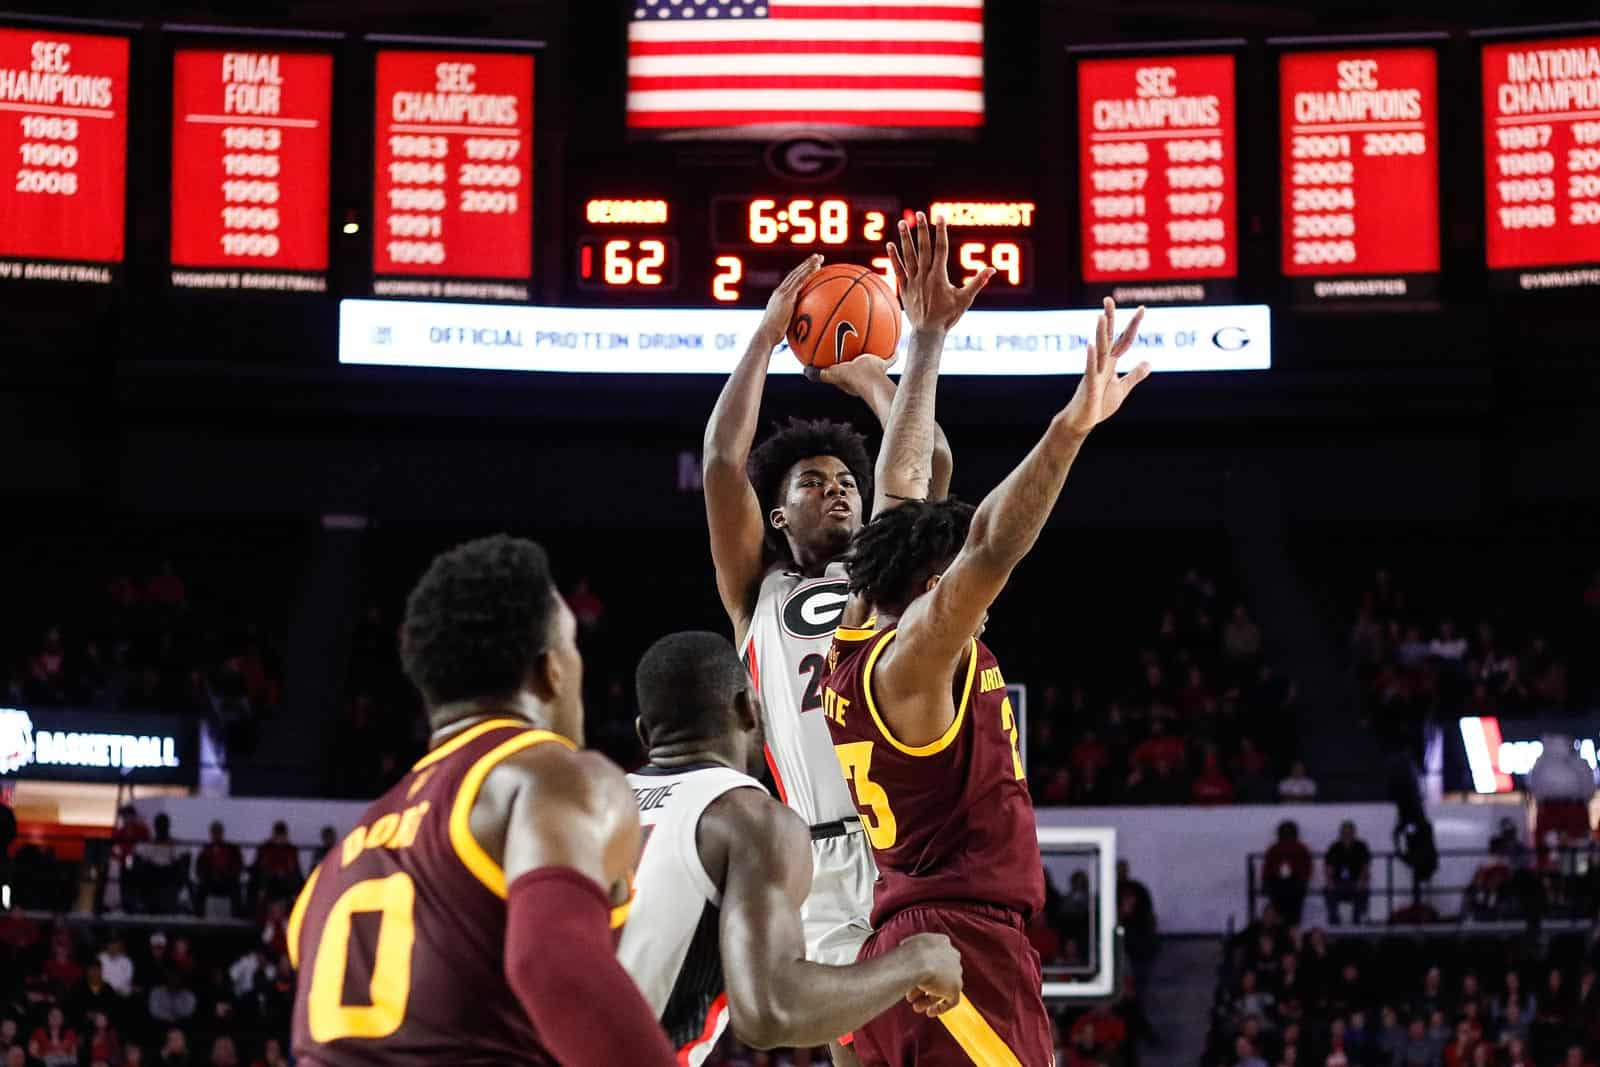 UGA Basketball: Arizona State